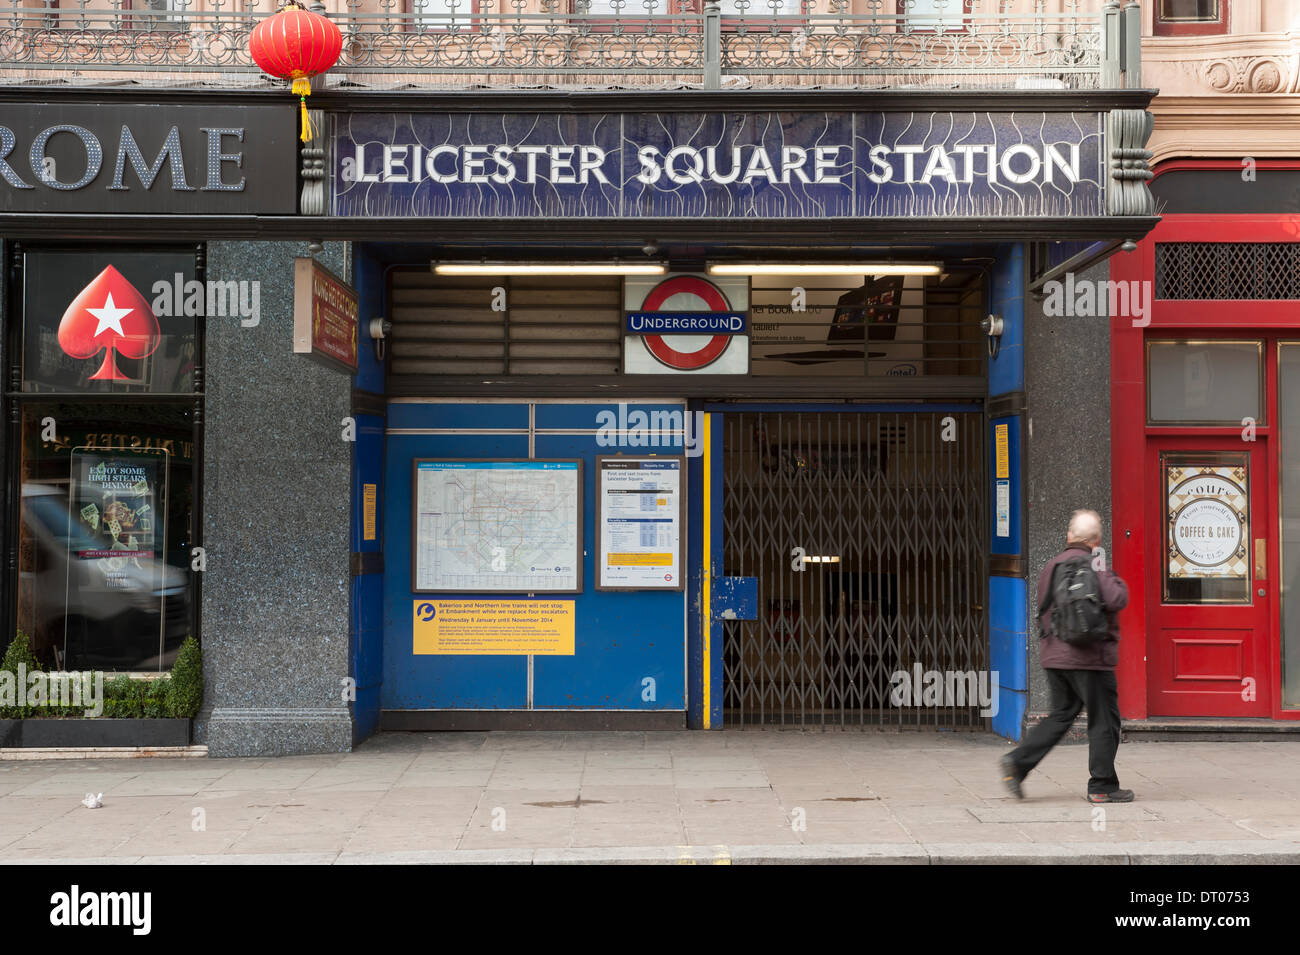 London, UK. 5th Feb, 2014. Leicester Square station is closed during the strike on the tube network. Northern Line underground trains are running during the strike but not stopping at many stations Credit:  Malcolm Park editorial/Alamy Live News - Stock Image